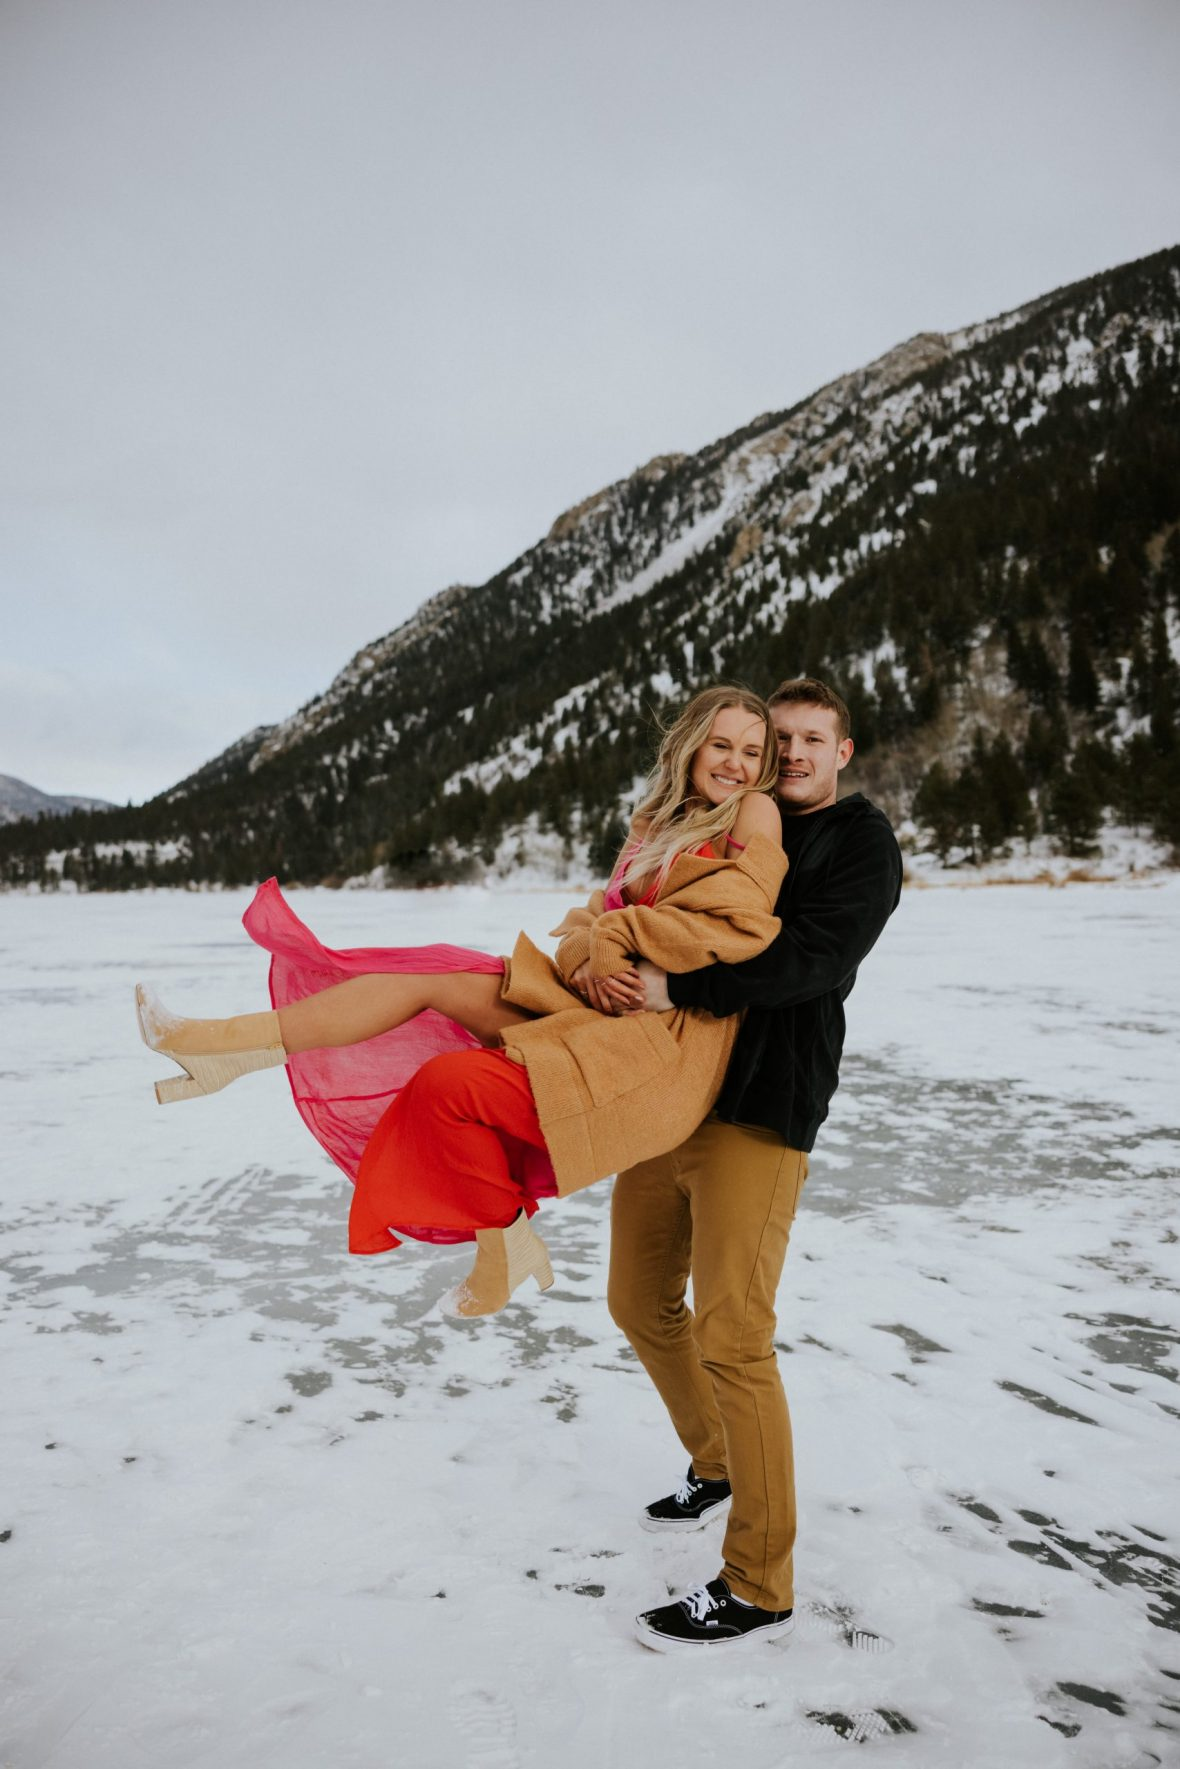 Couple snow day photo on Valentine's Day